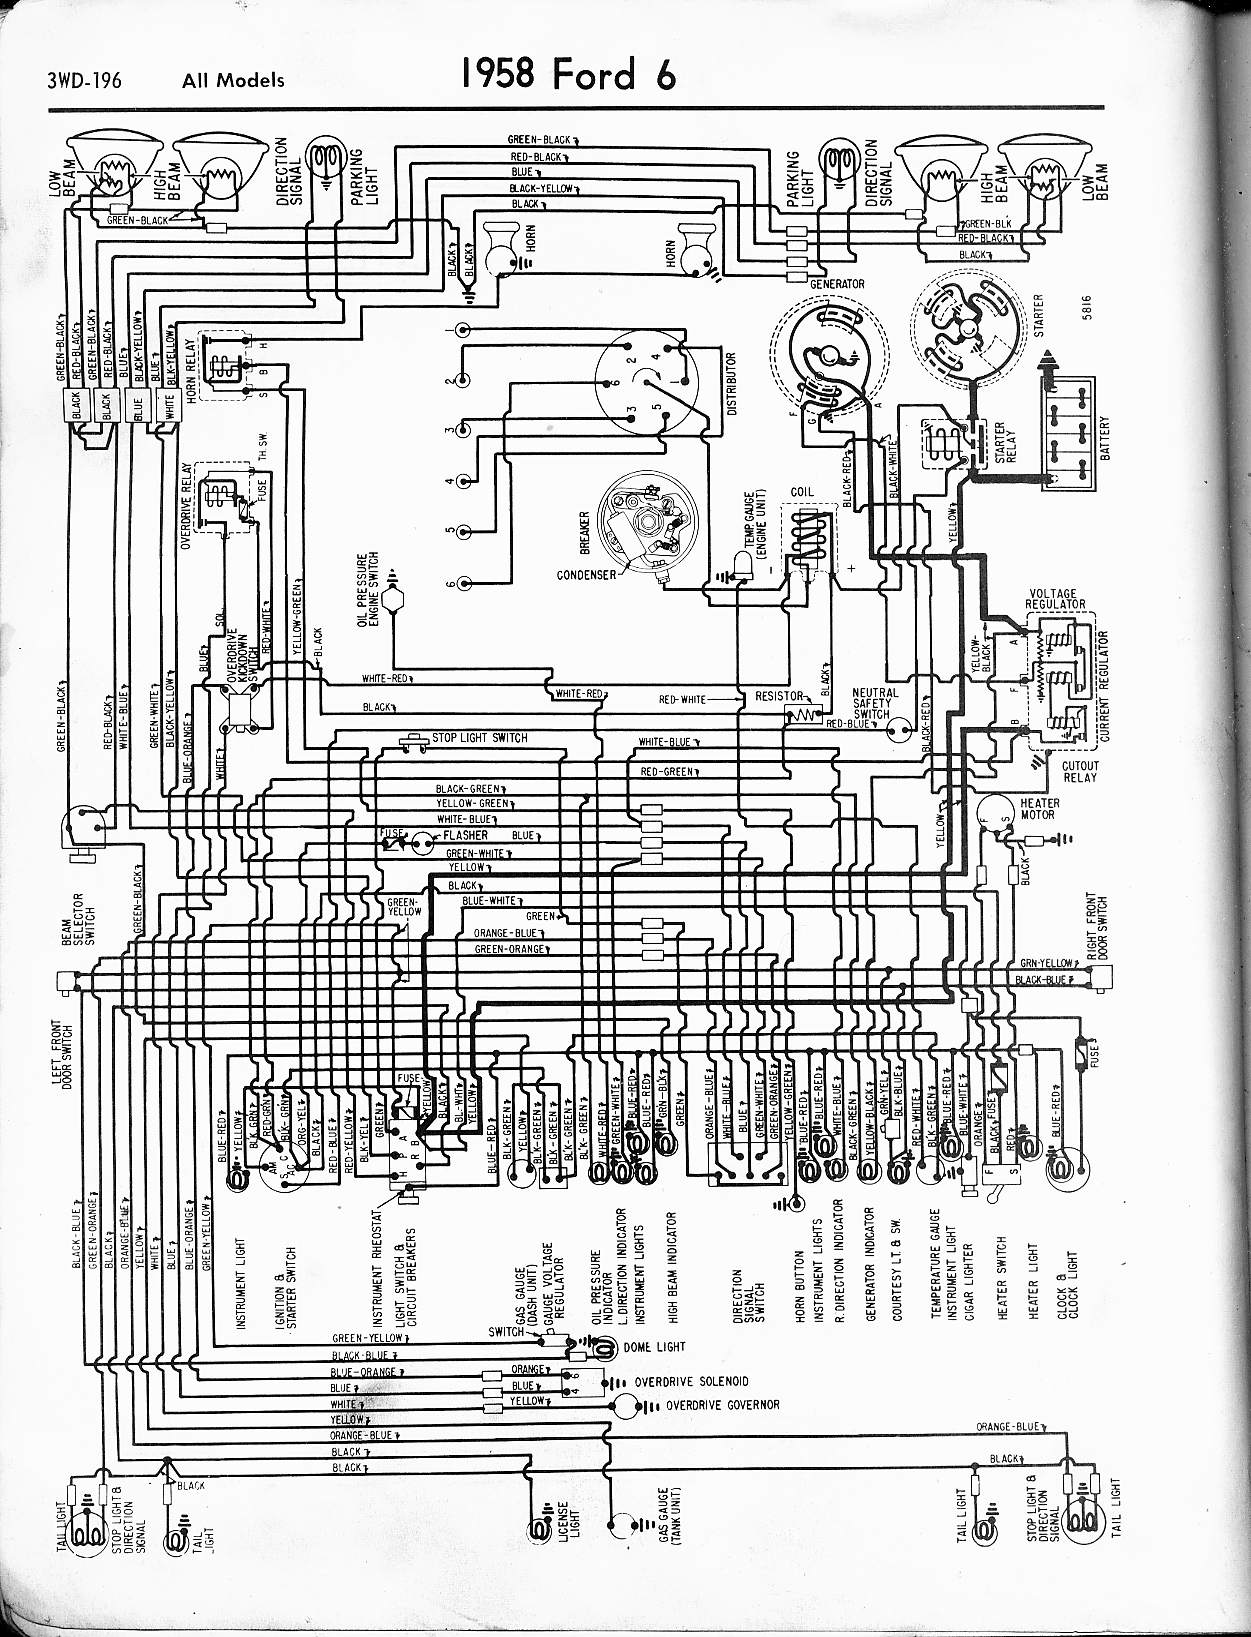 1973 ford f100 wiring harness diagram wiring diagram1973 ford truck wiring diagram wiring diagram ebook1979 ford f 250 tail light wiring wiring diagram1979